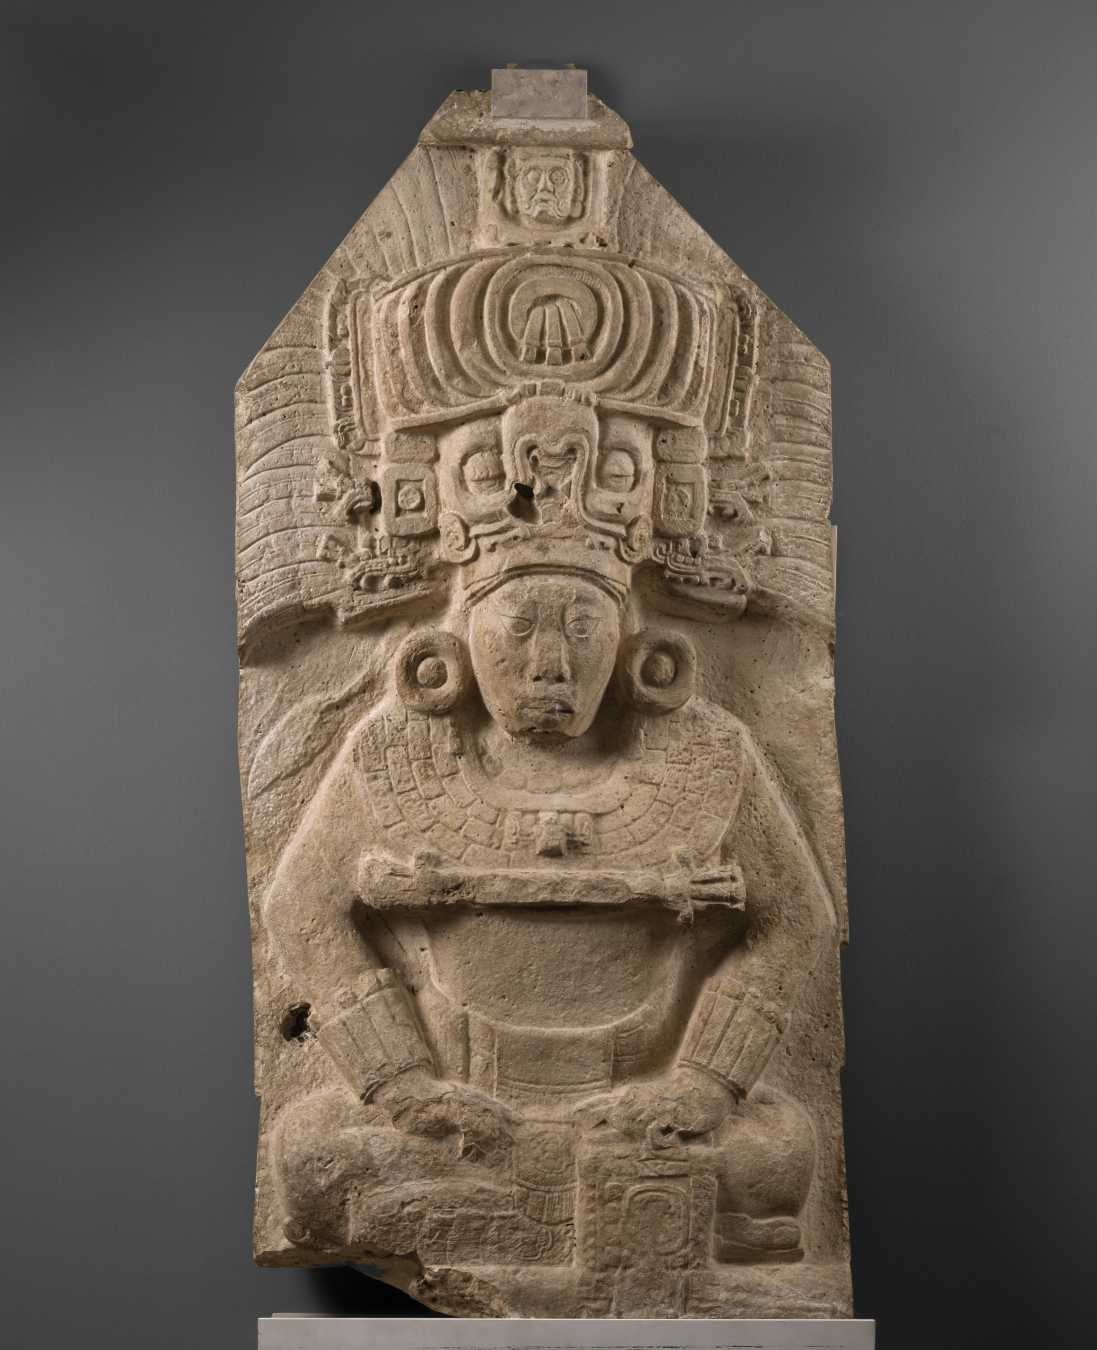 Maya, Seated Ruler from Stela 11, 731 AD